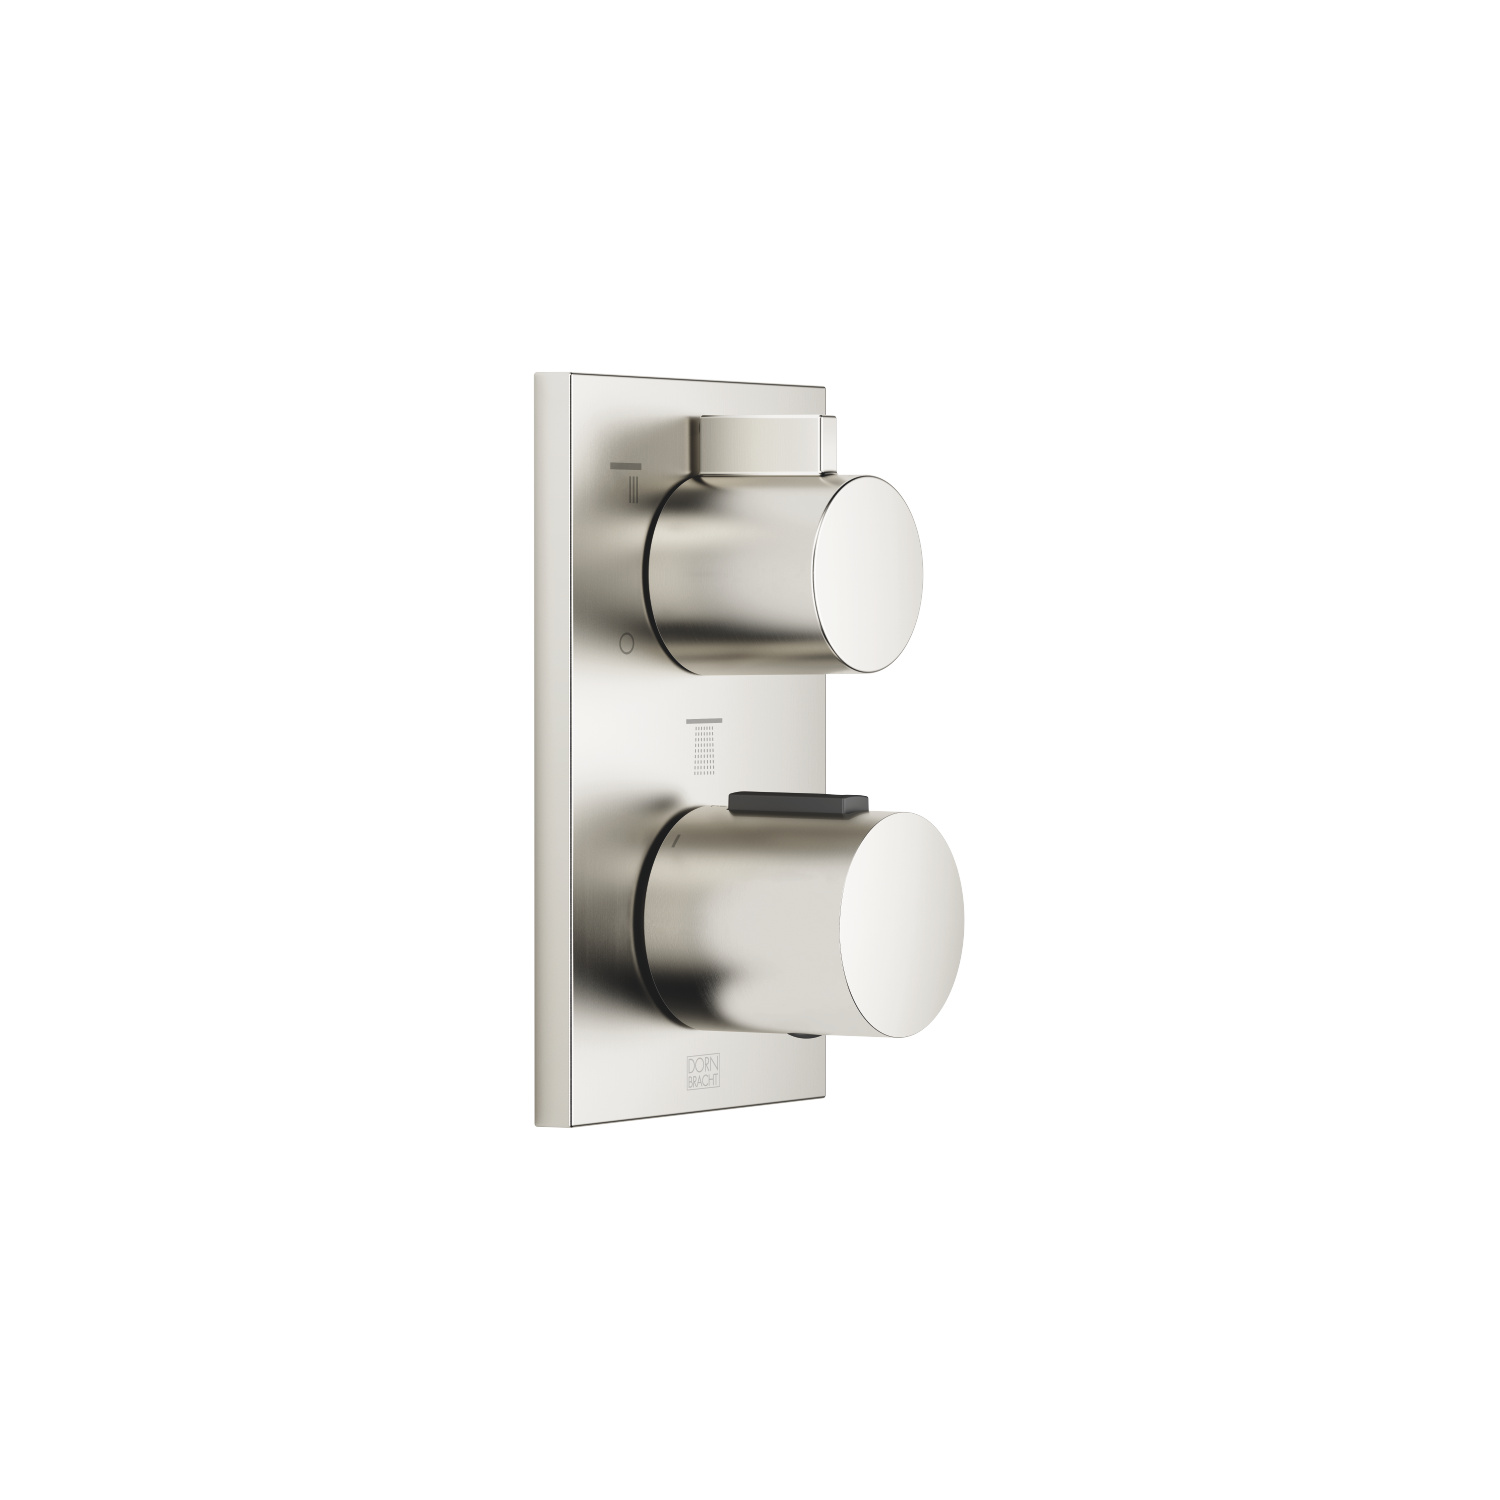 Concealed thermostat with three-way volume control - platinum matte